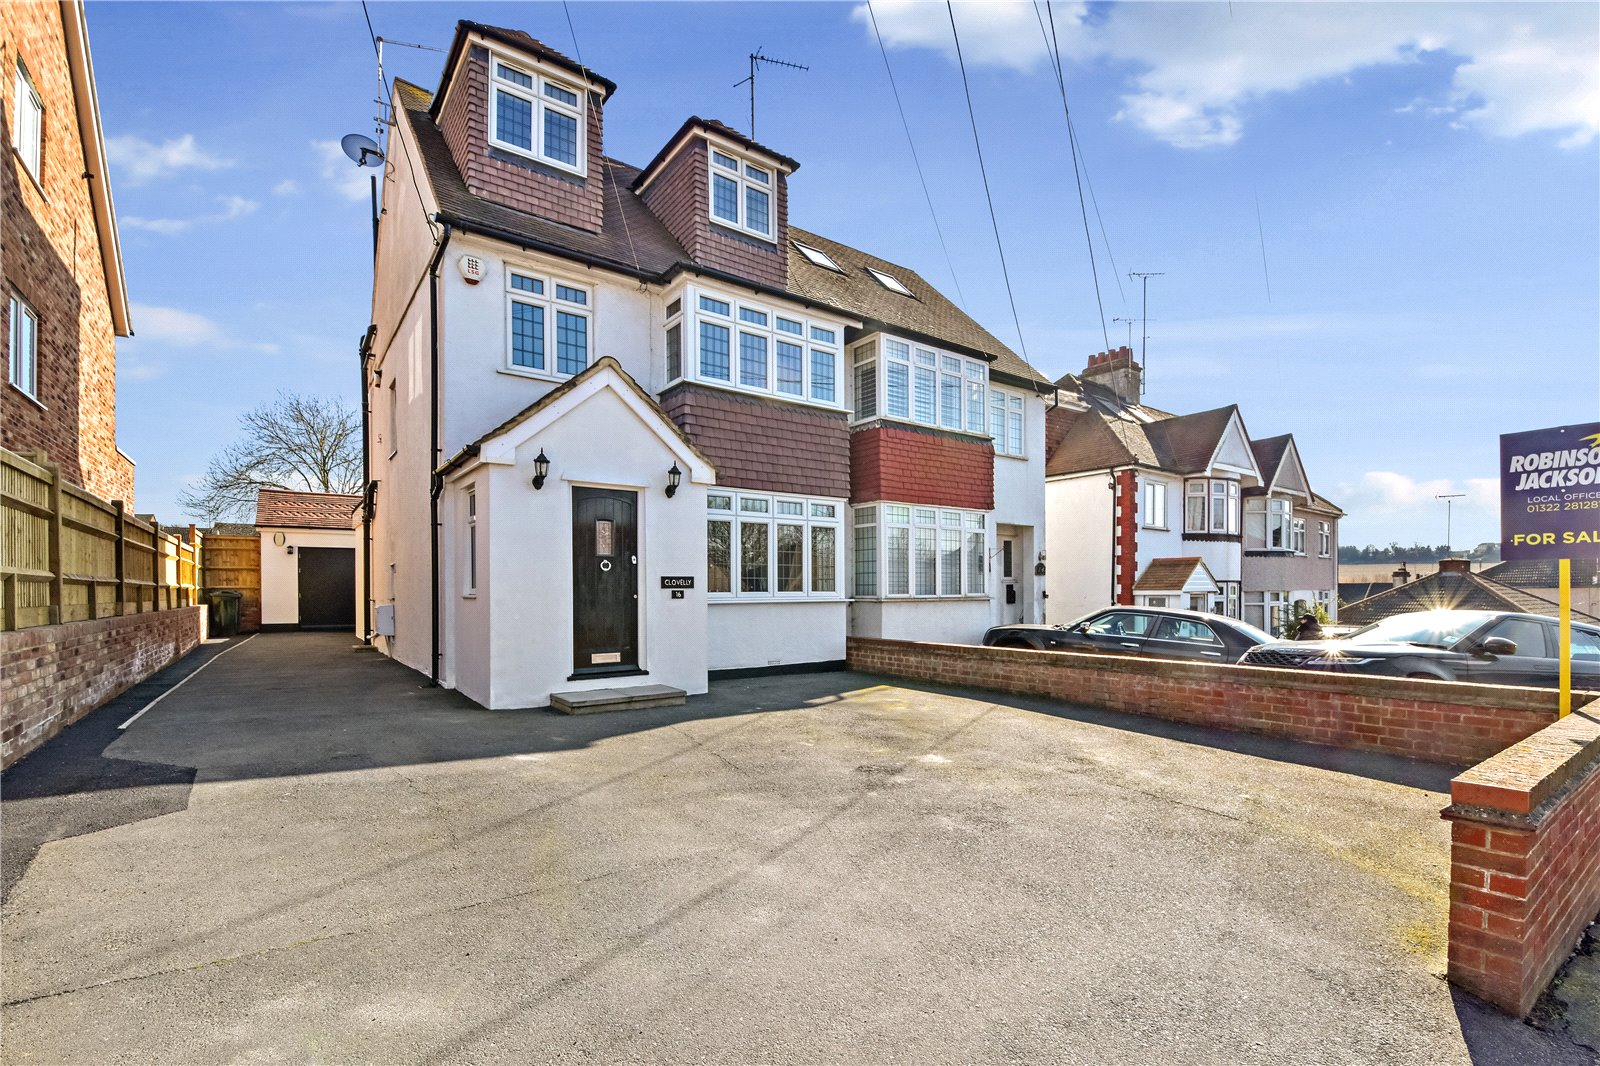 Wood Lane, Darenth, Dartford, Kent, DA2